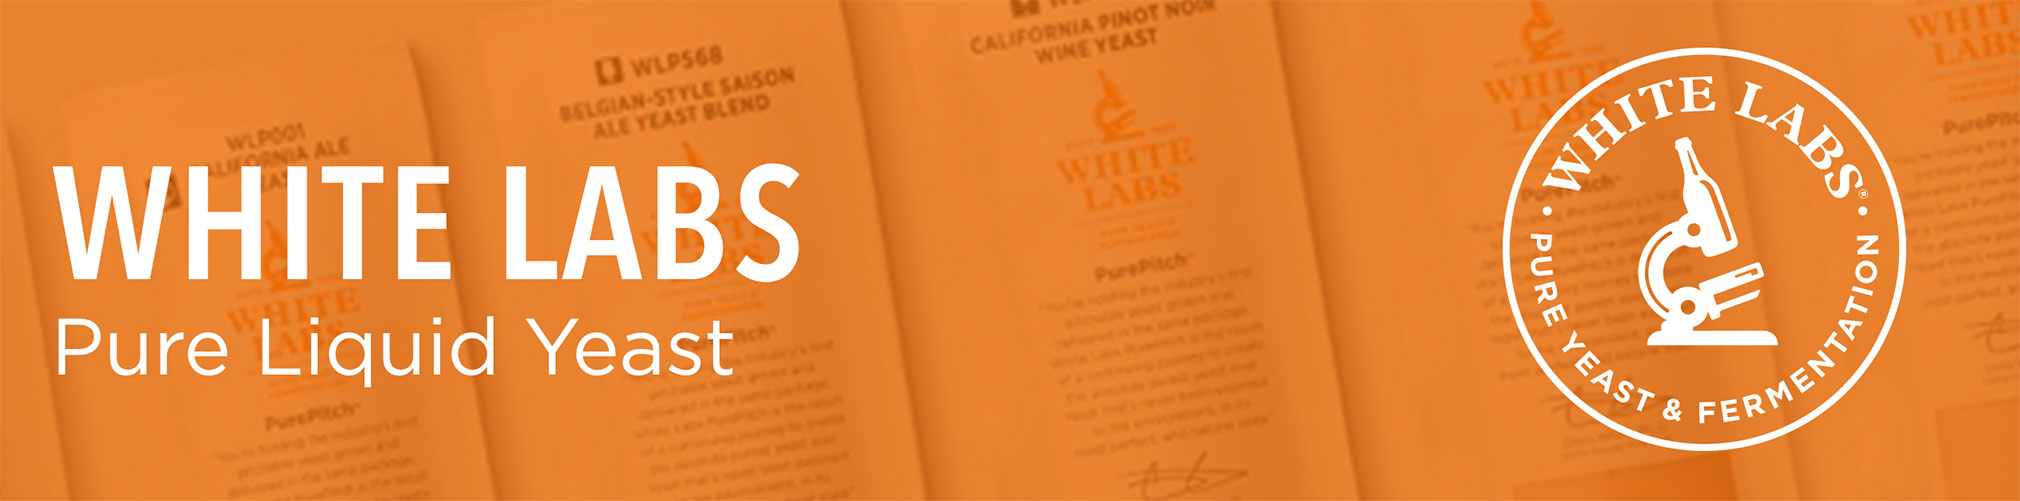 White Labs Liquid Yeast collection banner